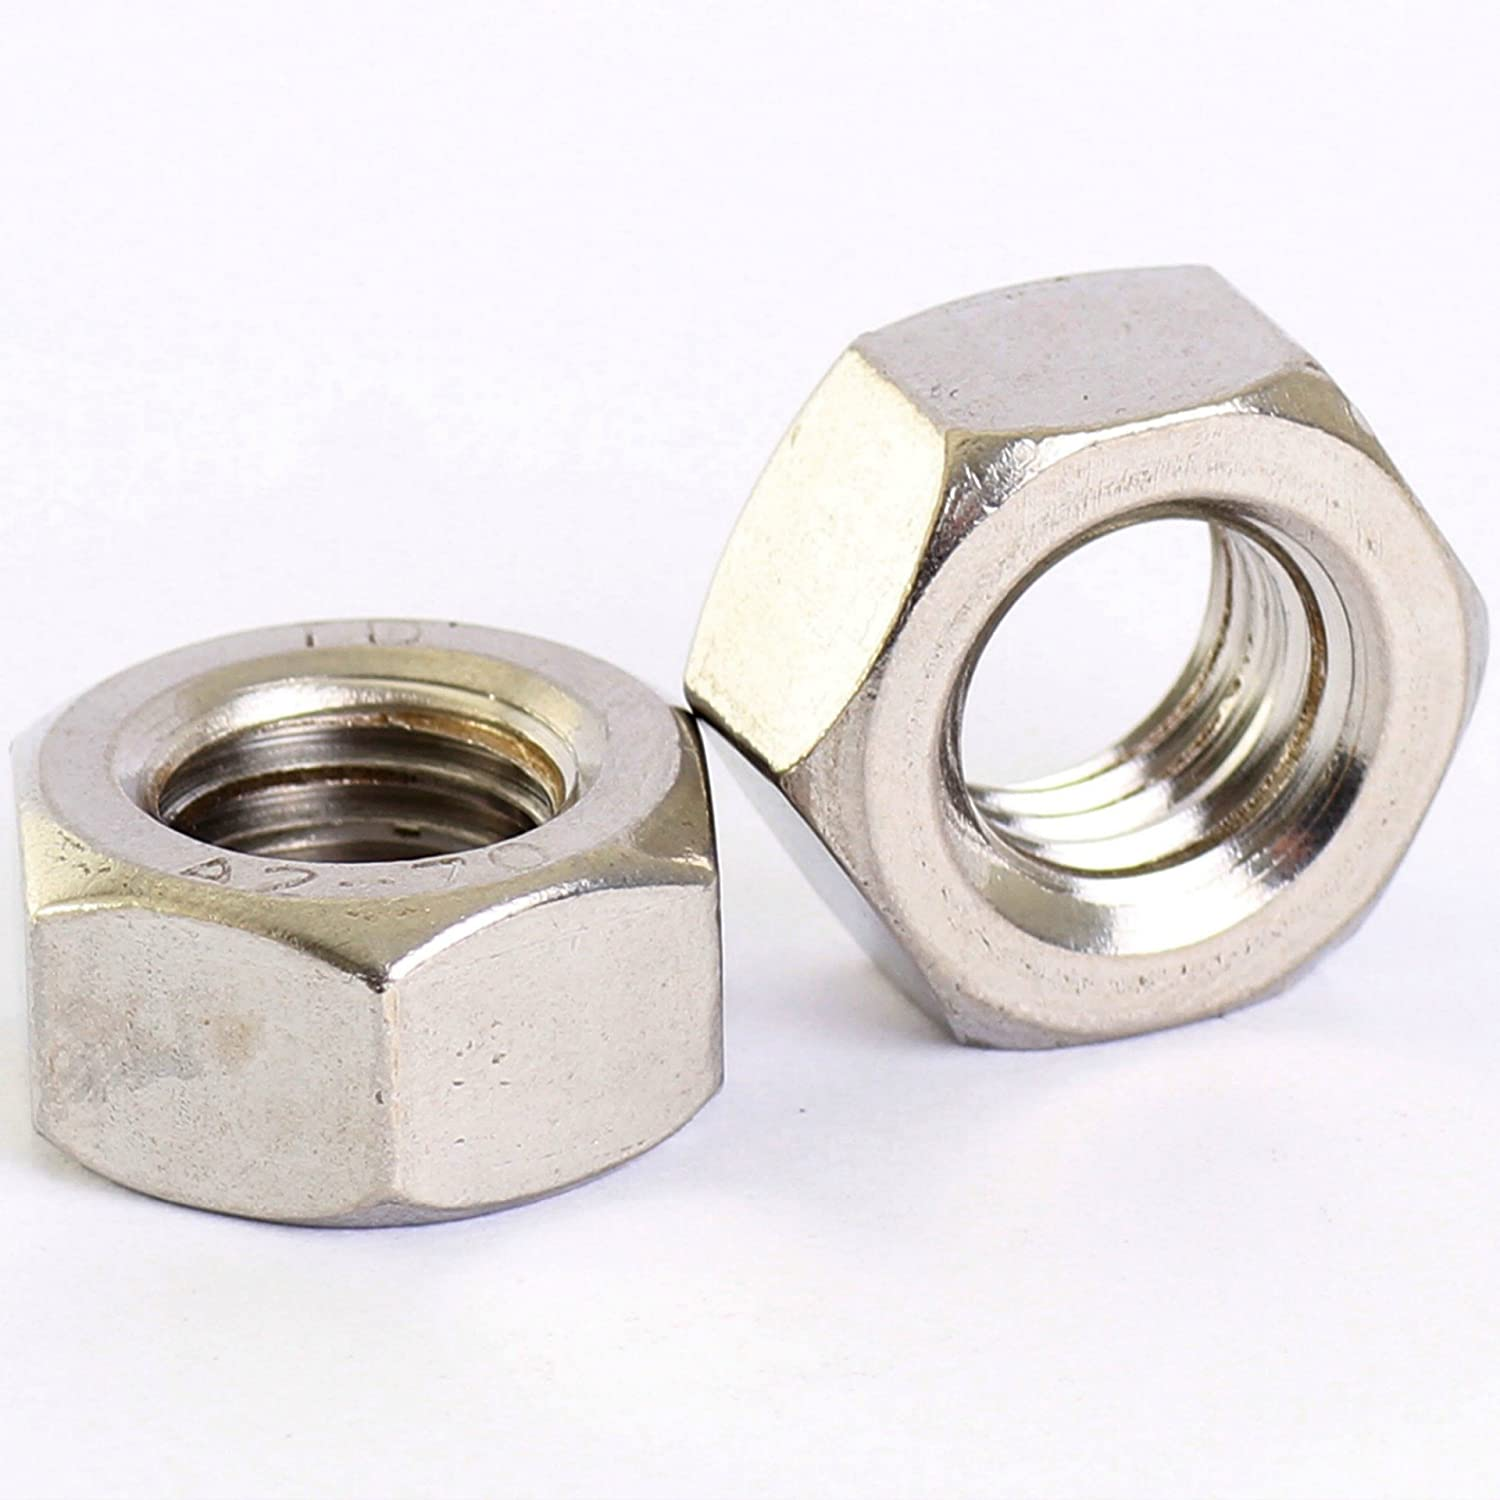 20 PIECES  12mm x 1.75 HEX NUTS M12 1.75 STEEL FREE SHIPPING DIN.9